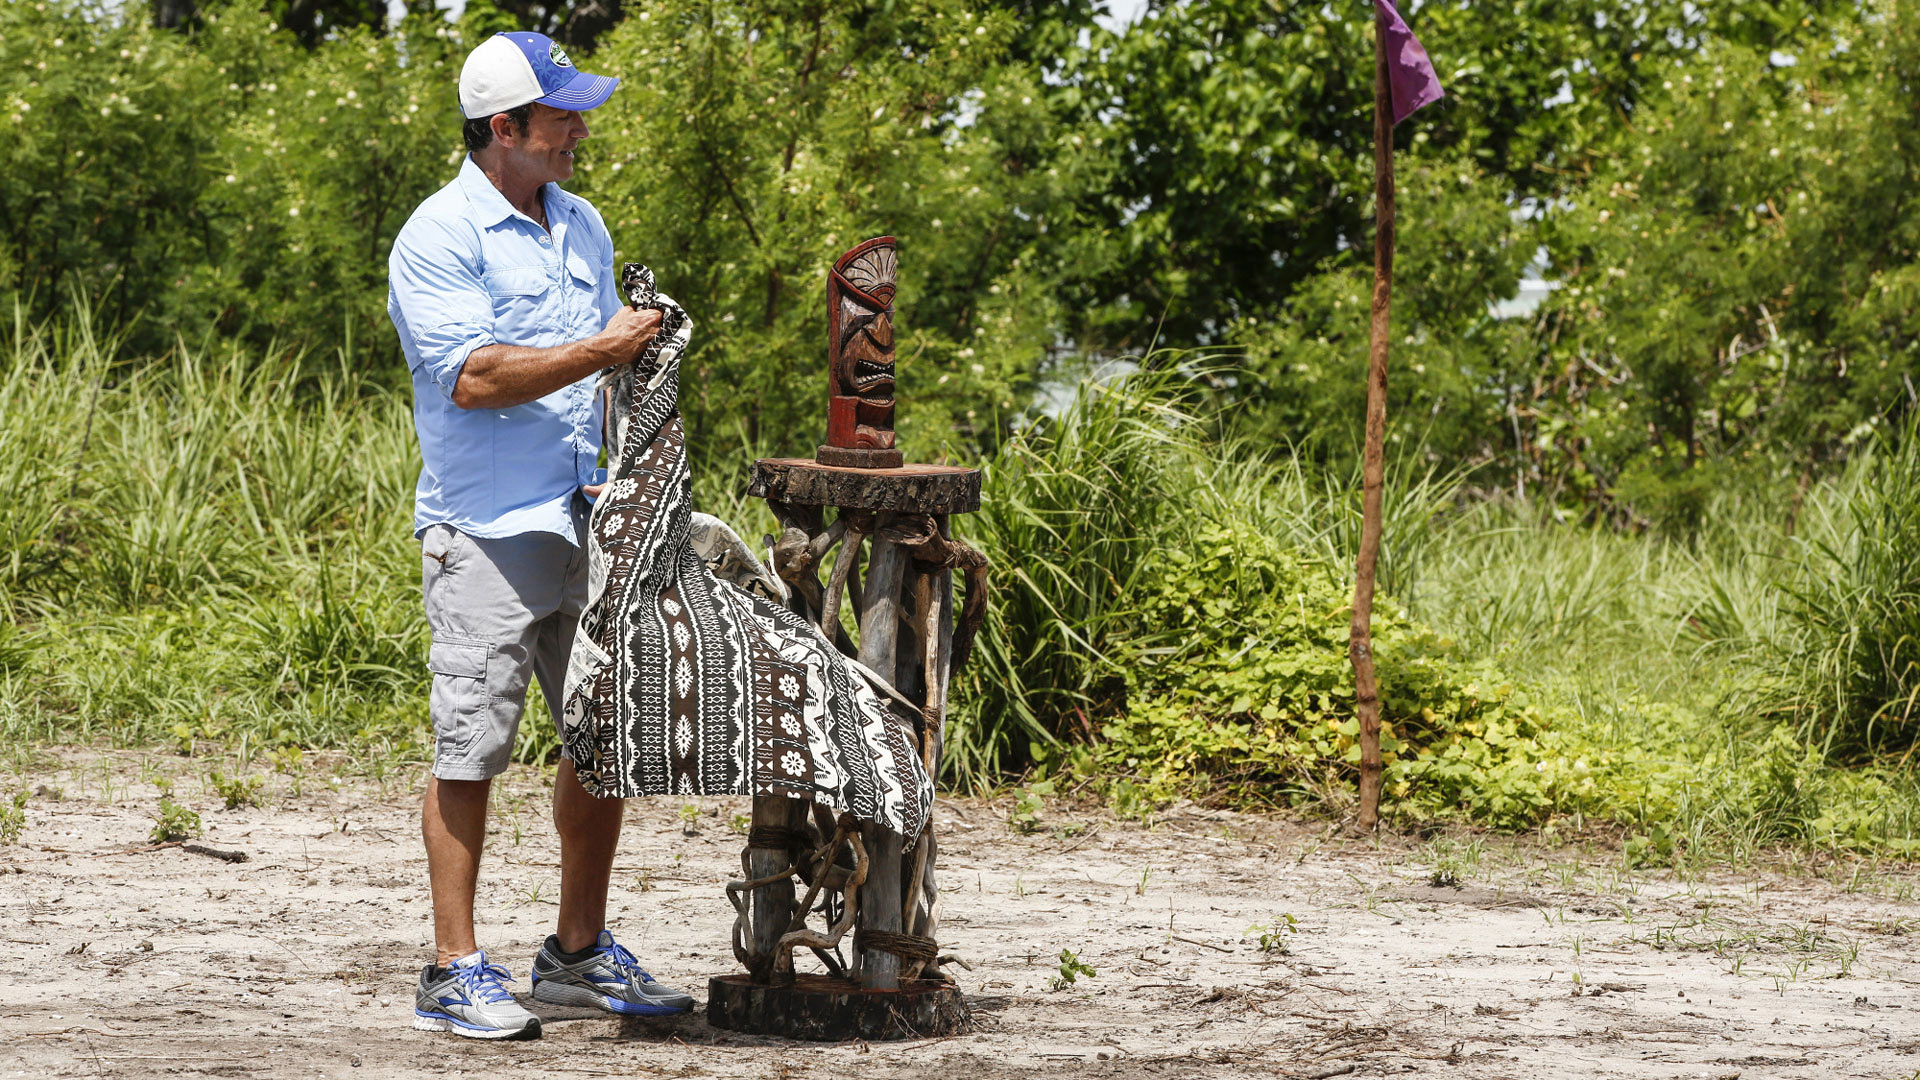 Jeff unveils the coveted Immunity Idol before the start of the first challenge.